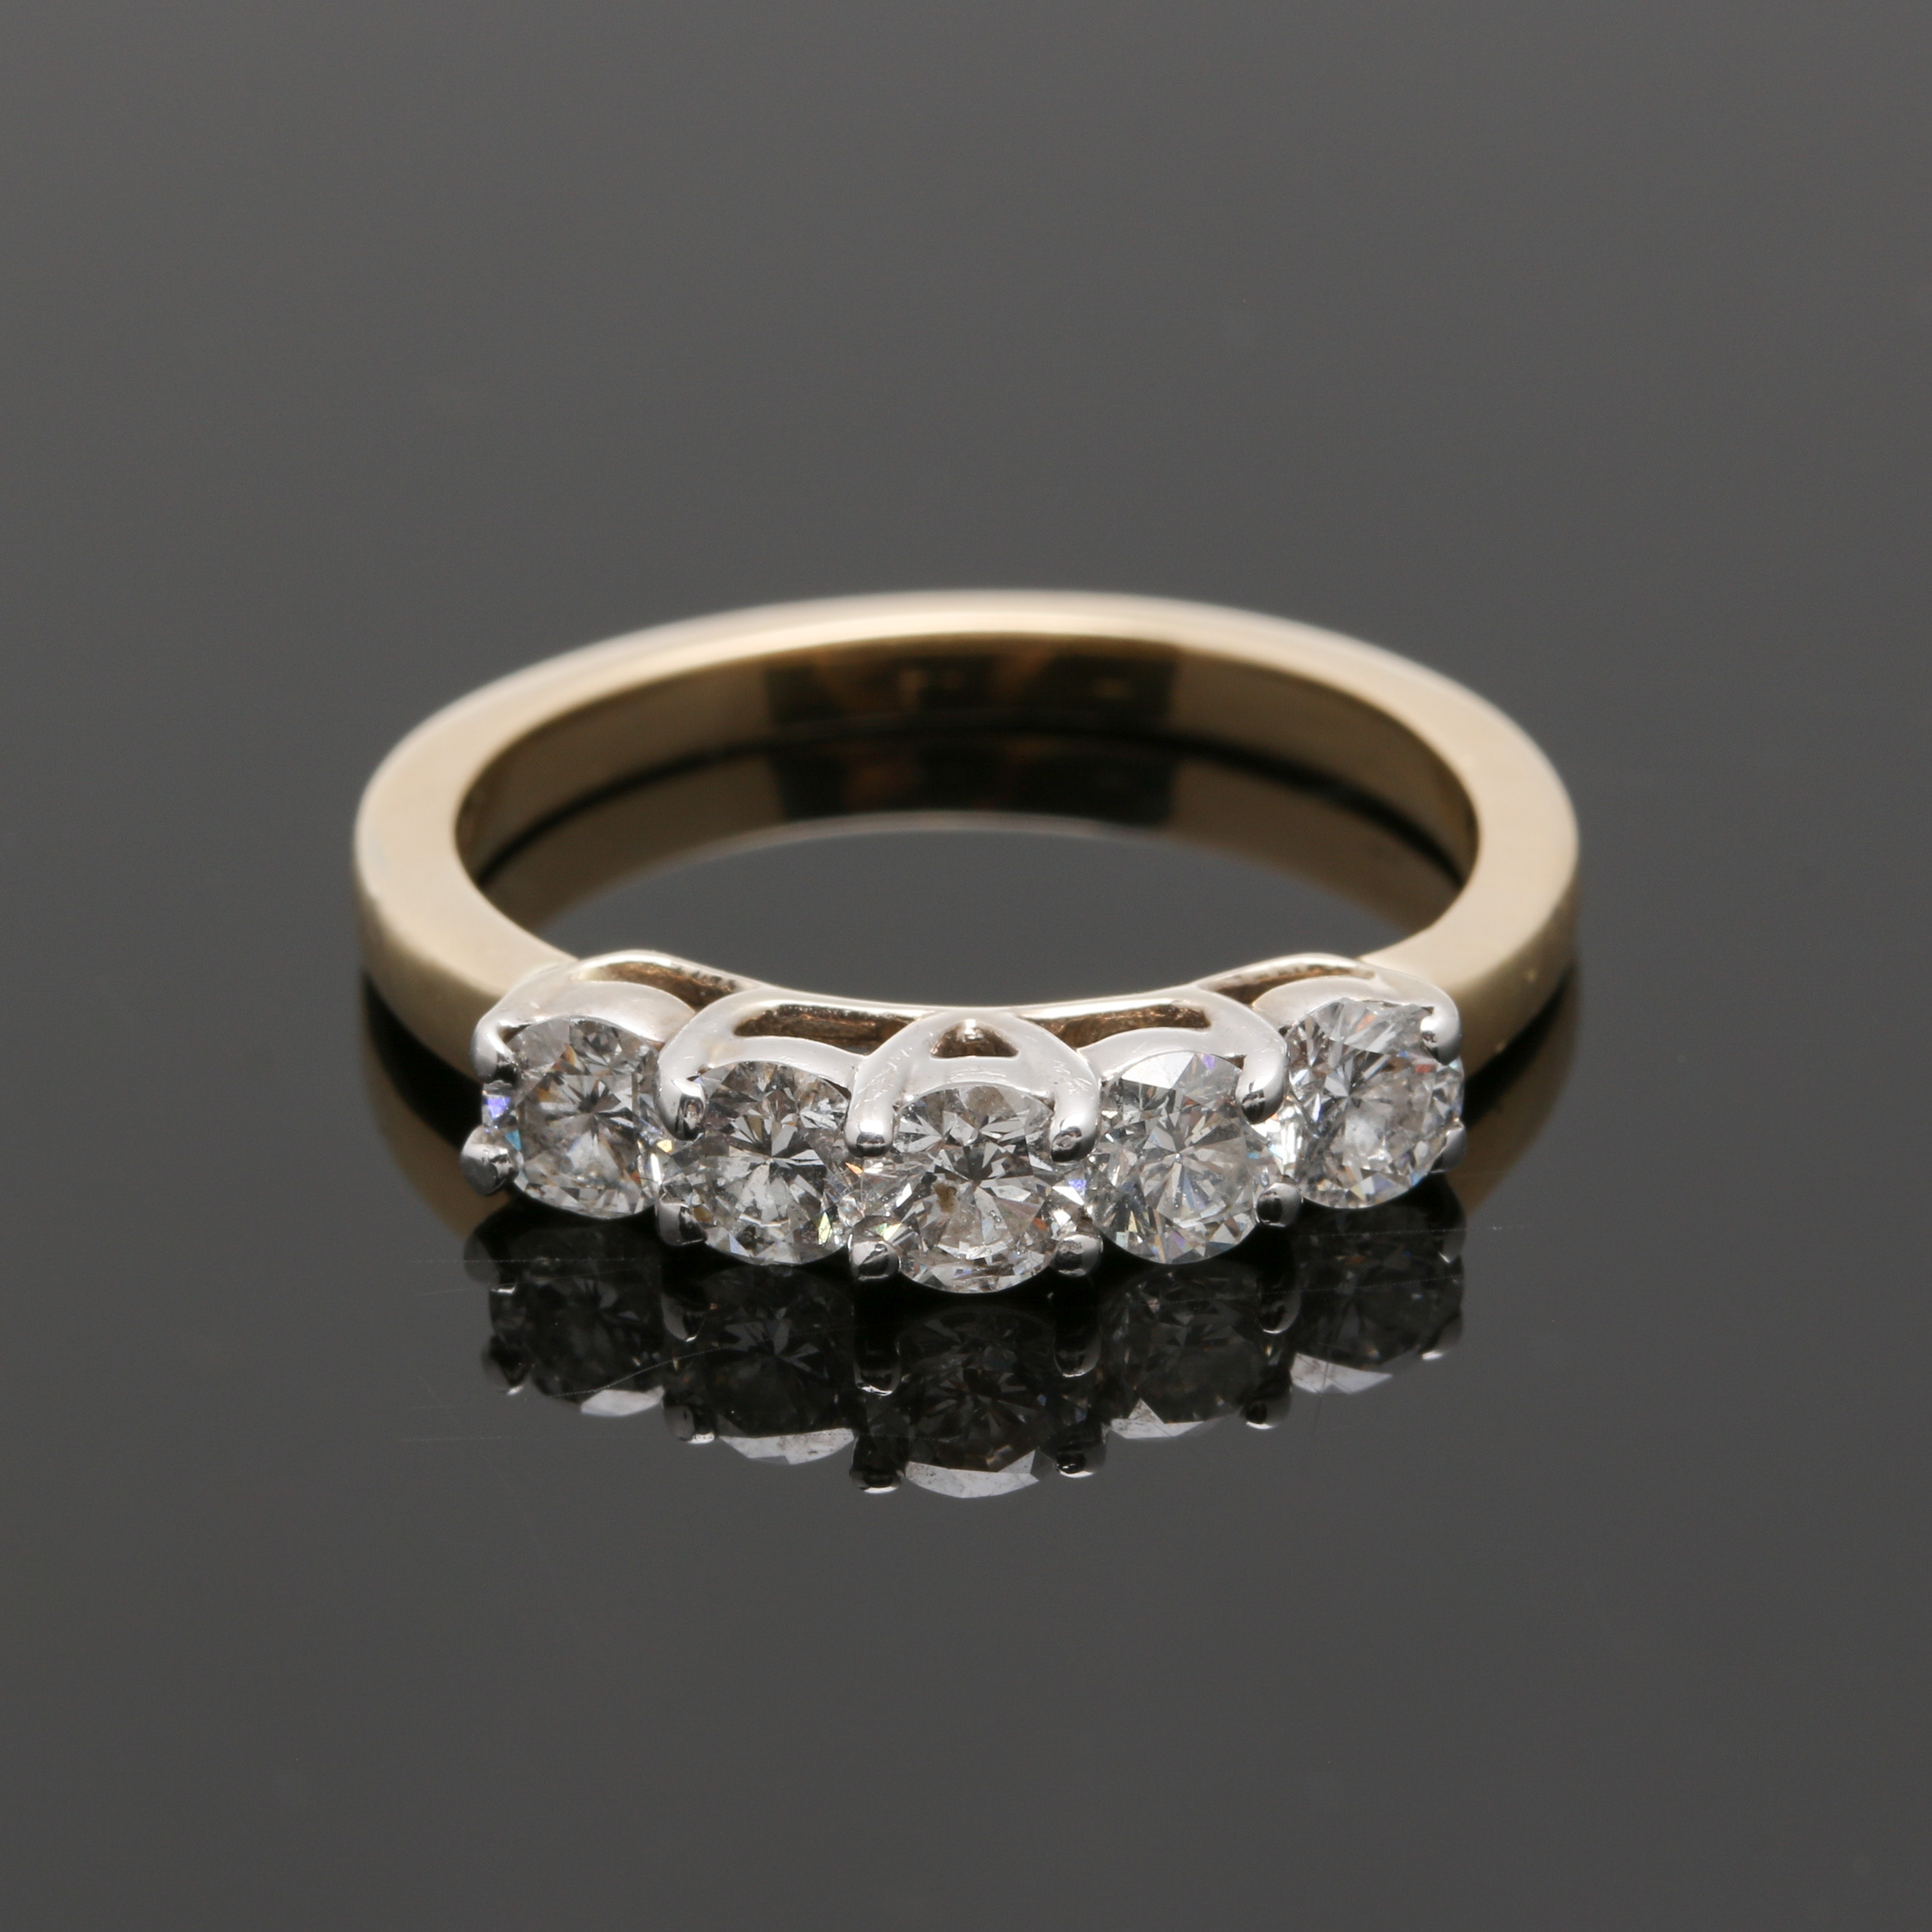 14K Yellow Gold Diamond Five Stone Ring